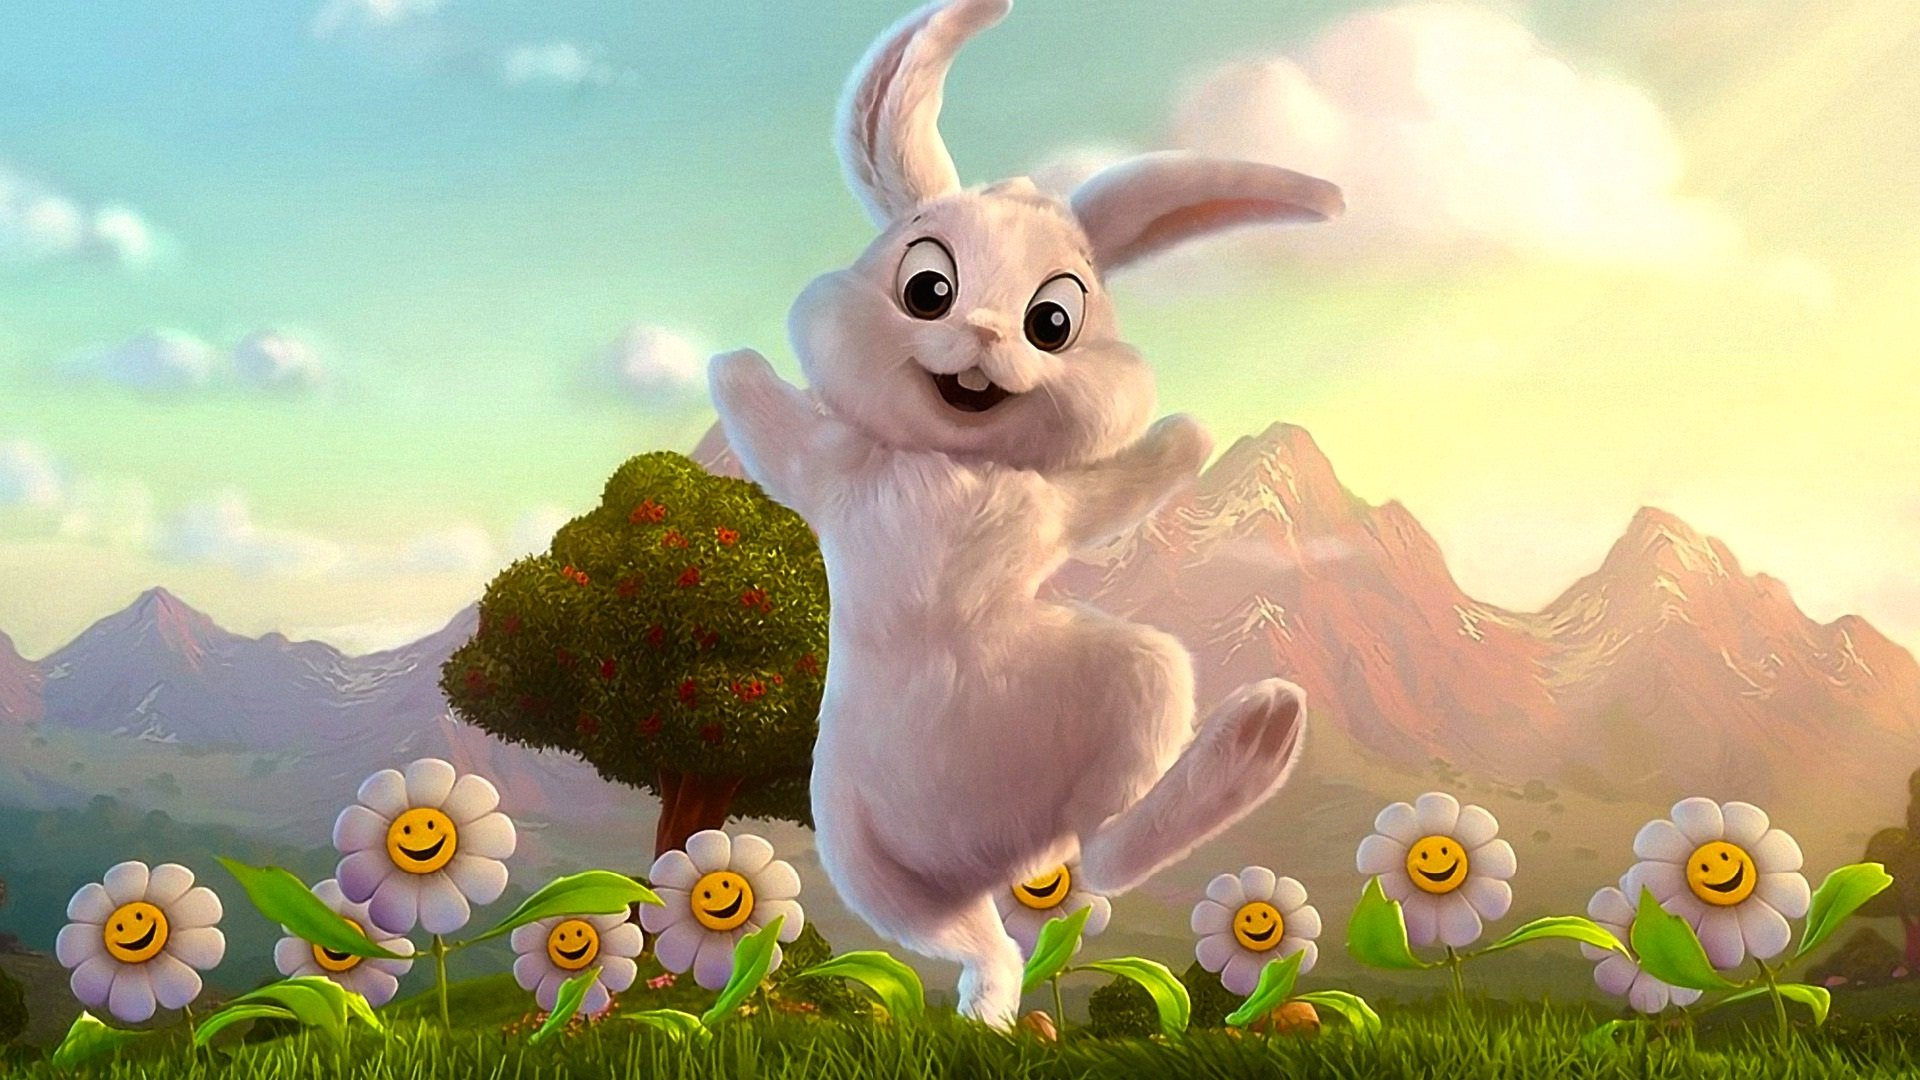 Holiday - Easter  Holiday Bunny White Grass Flower Daisy Tree Wallpaper